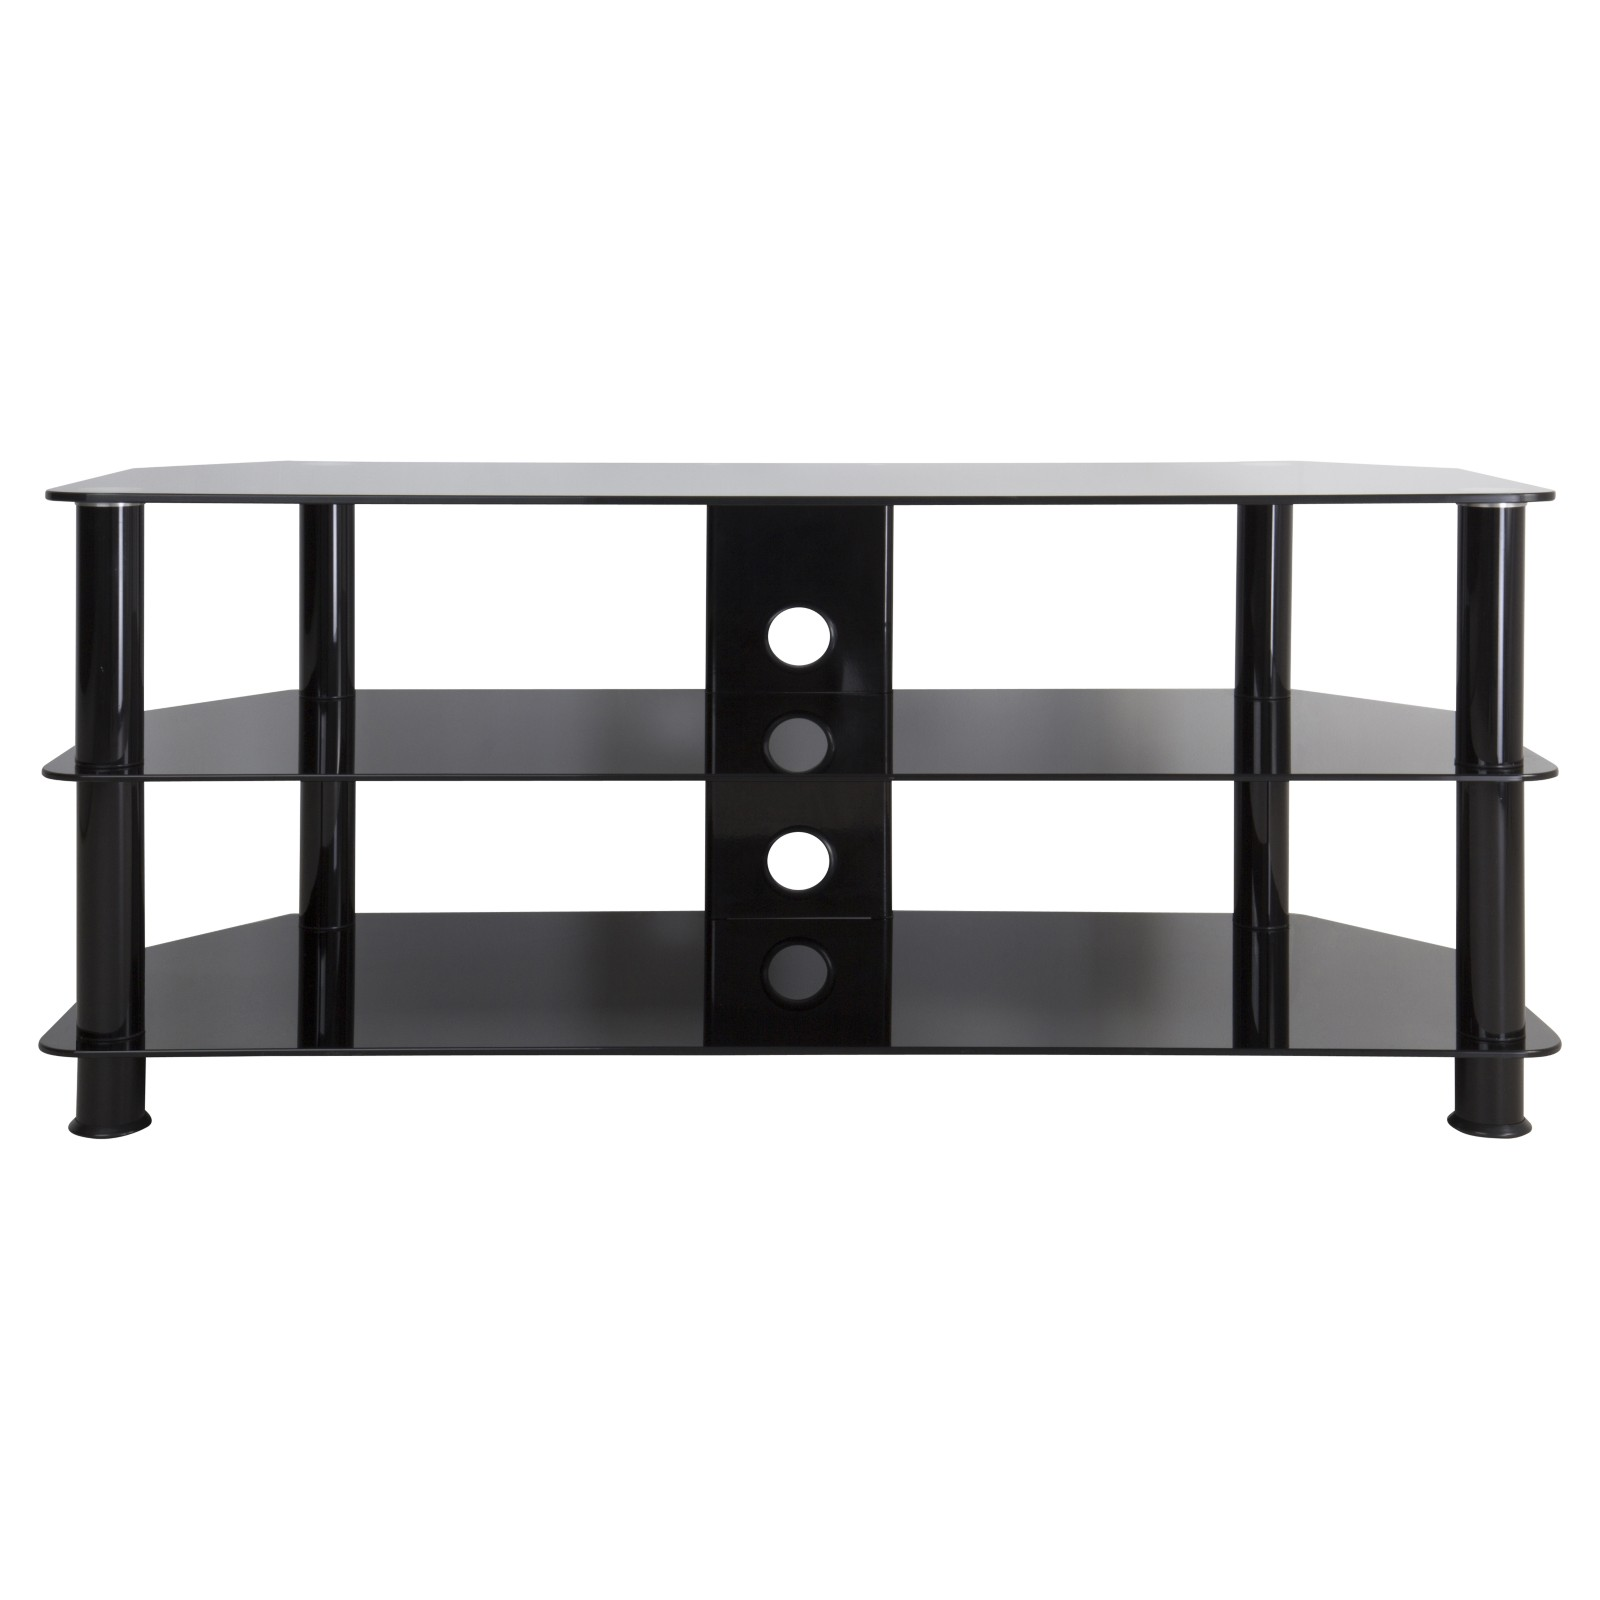 """John Lewis GP1140 TV Stand for TVs up to 55"""" Black"""